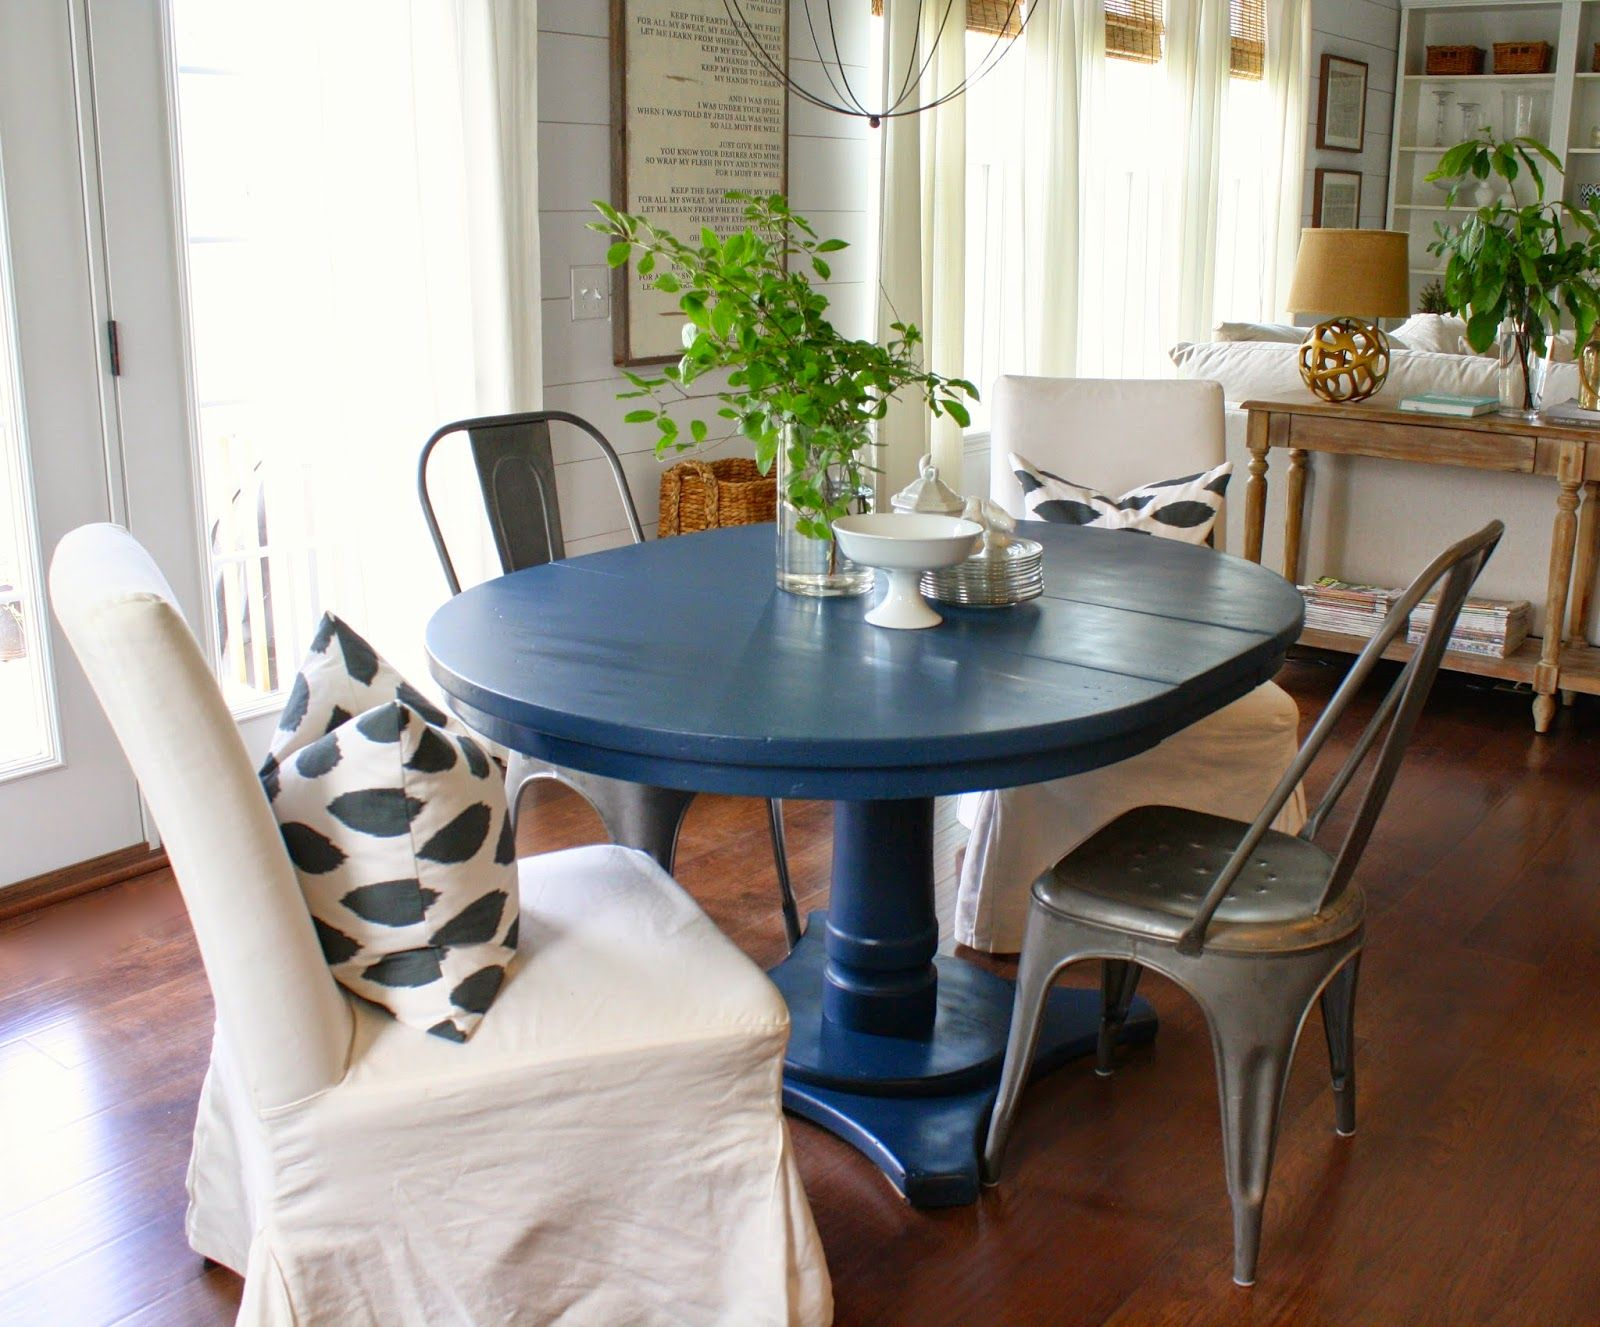 Navy Blue Dining Table   Blue dining tables, Dining room blue ...